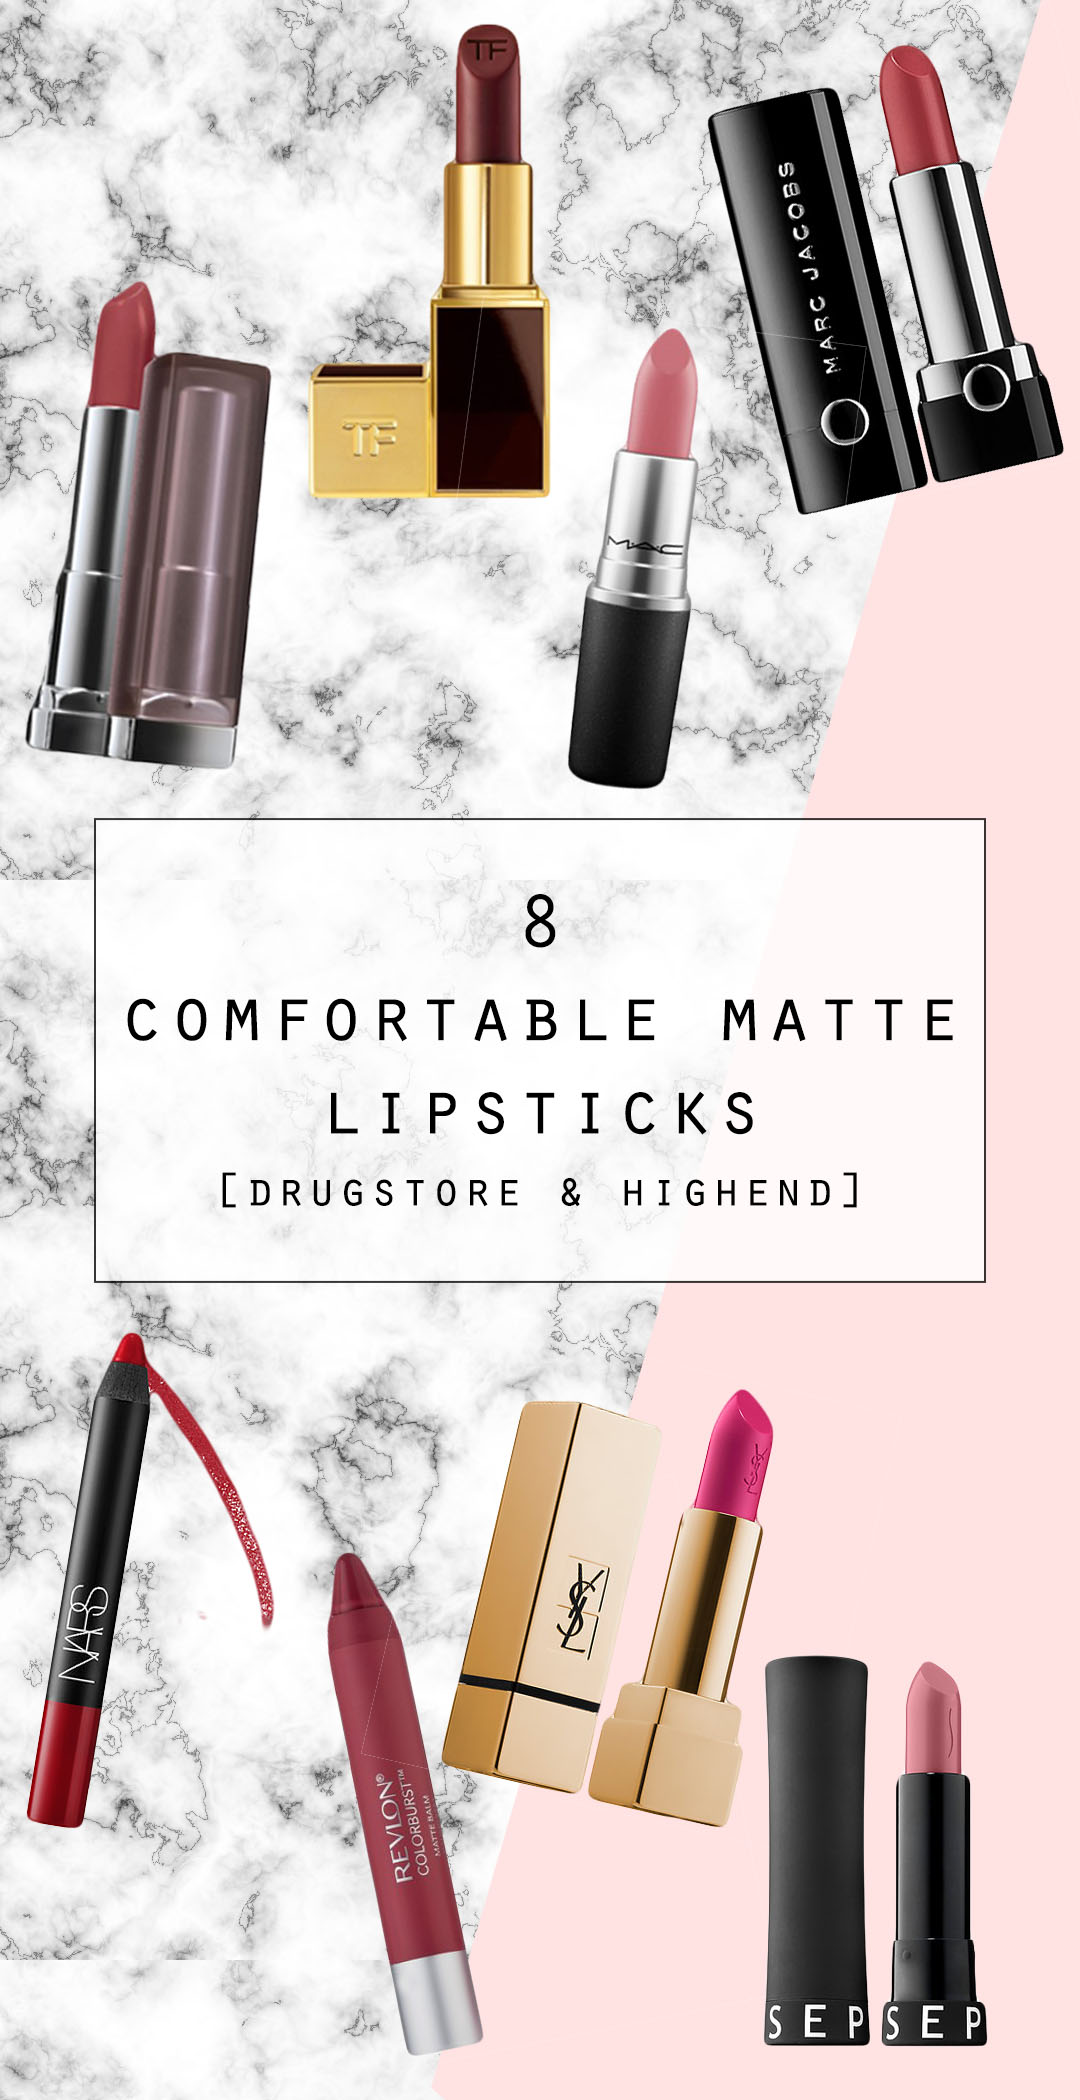 8 Comfortable Matte Lipsticks drugstore and highend